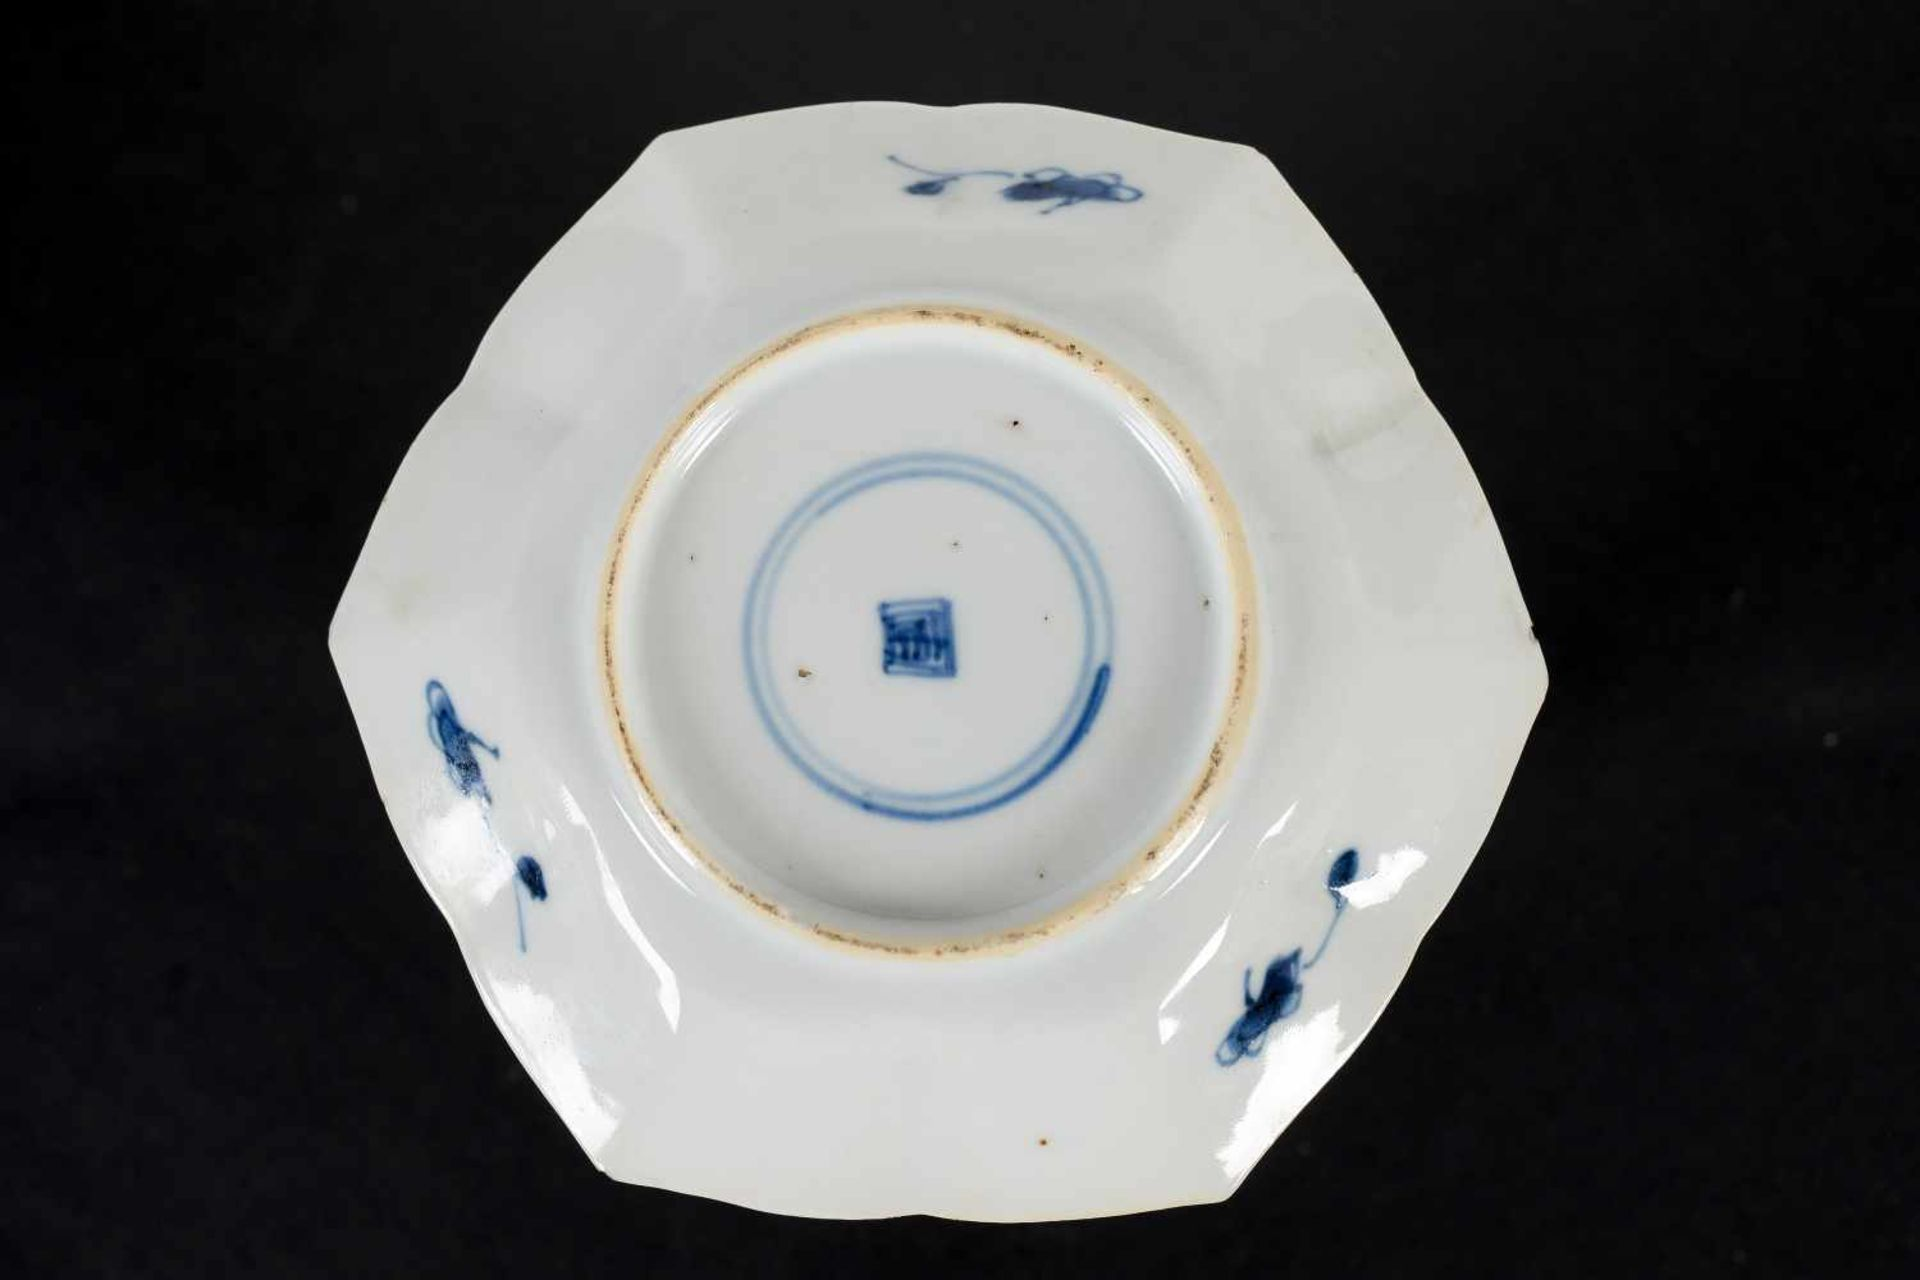 A set of three hexagonal blue and white porcelain cups with saucers, decorated with ducks, flowers - Bild 6 aus 12